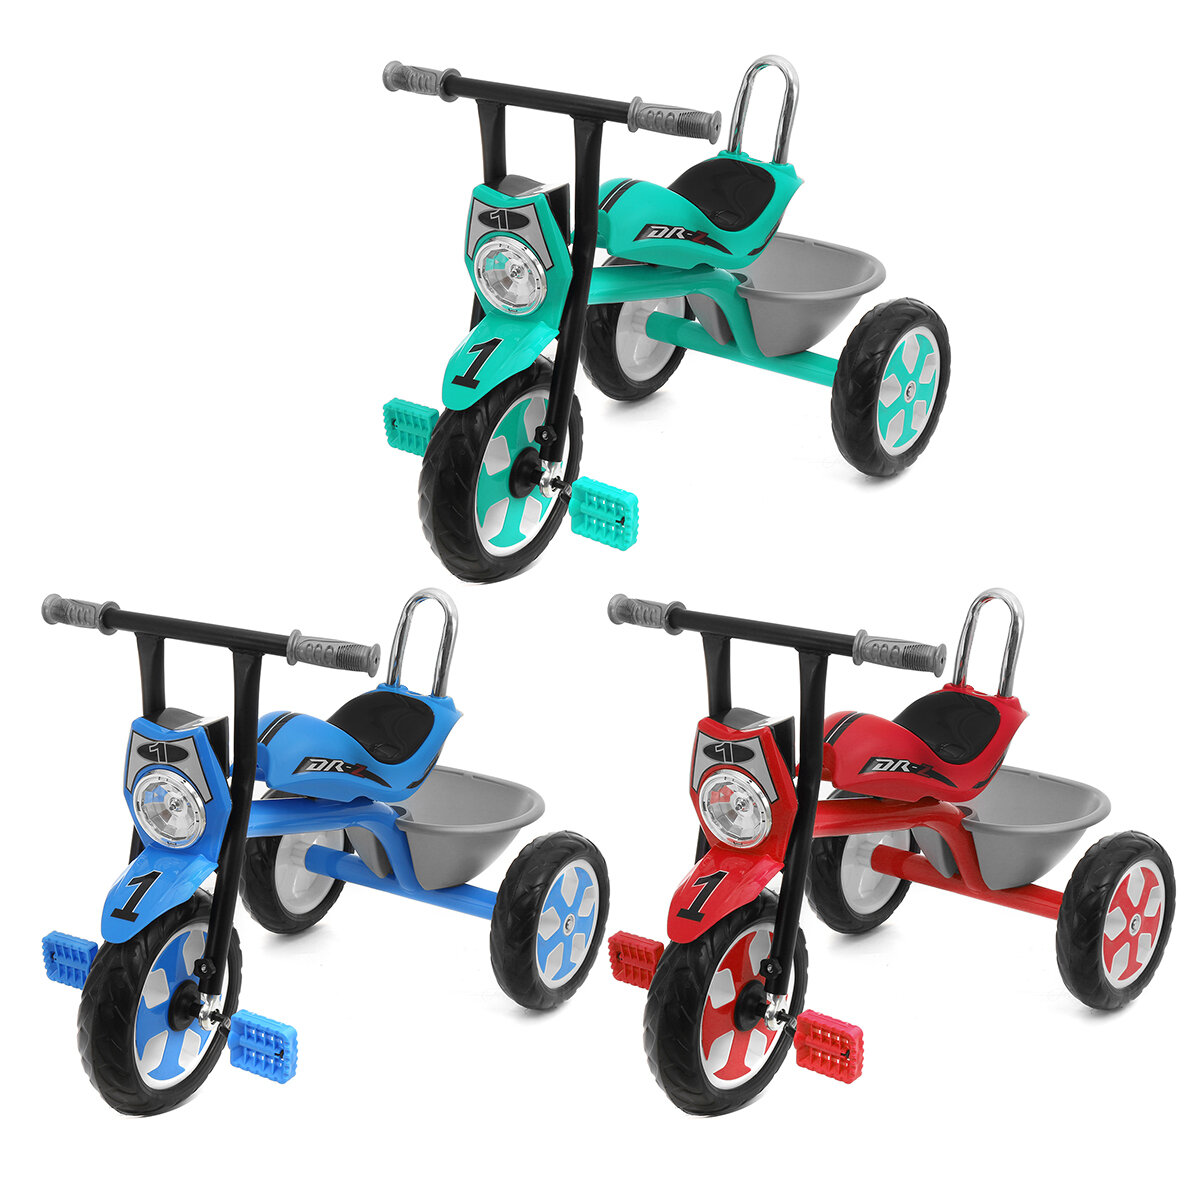 Baby Pedals Tricycle with Music Light&Basket Kids Toddler Walker Children Bicycle Outdoor Garden Bike for 2-5 Years Old